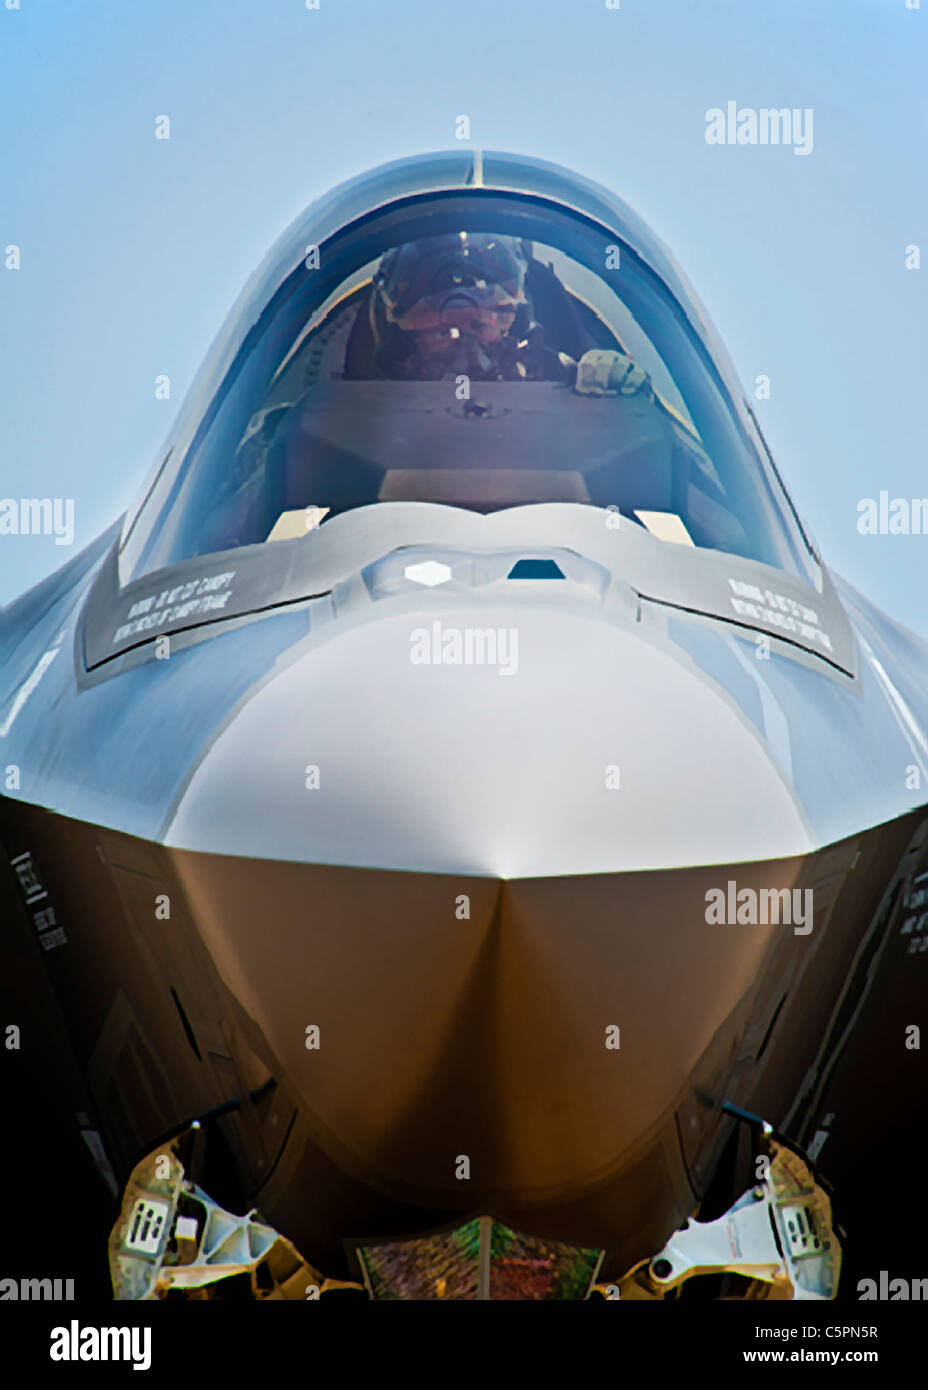 U.S. Air Force F-35 Lightning II fighter aircraft, the newest advanced fighter aircraft - Stock Image